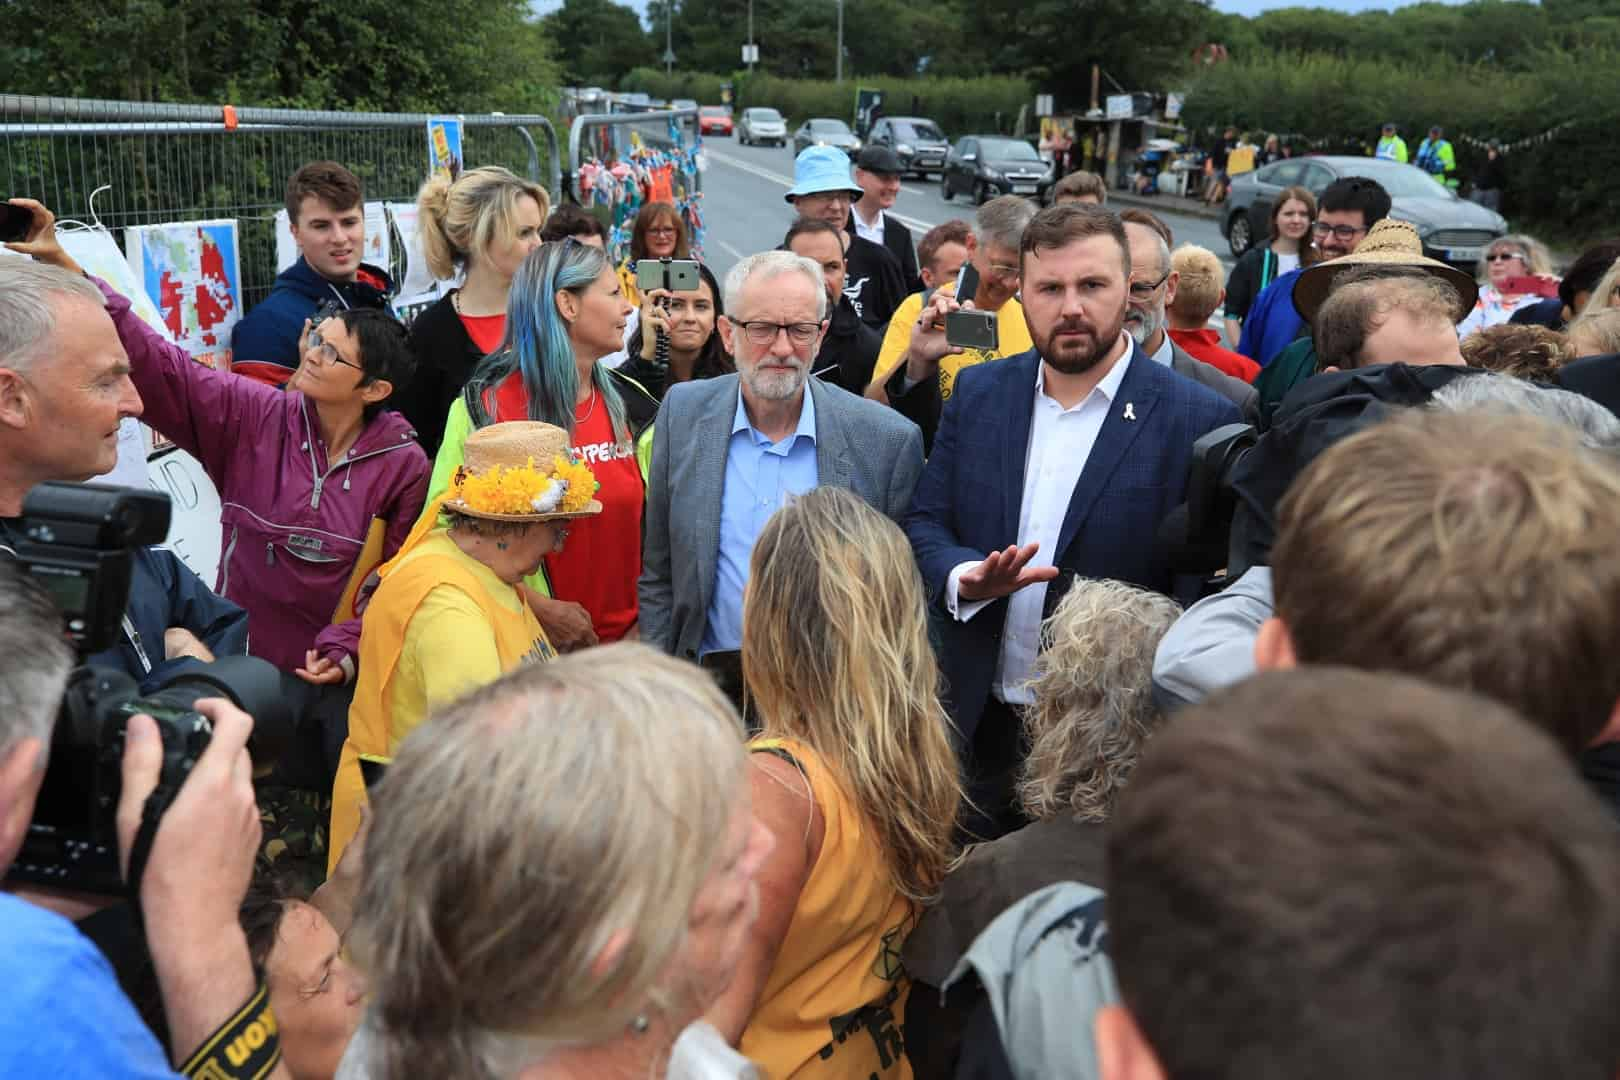 Jeremy Corbyn speaks to anti-fracking protesters outside the gate at the Preston New Road shale gas exploration site in Lancashire (Peter Byrne/PA)